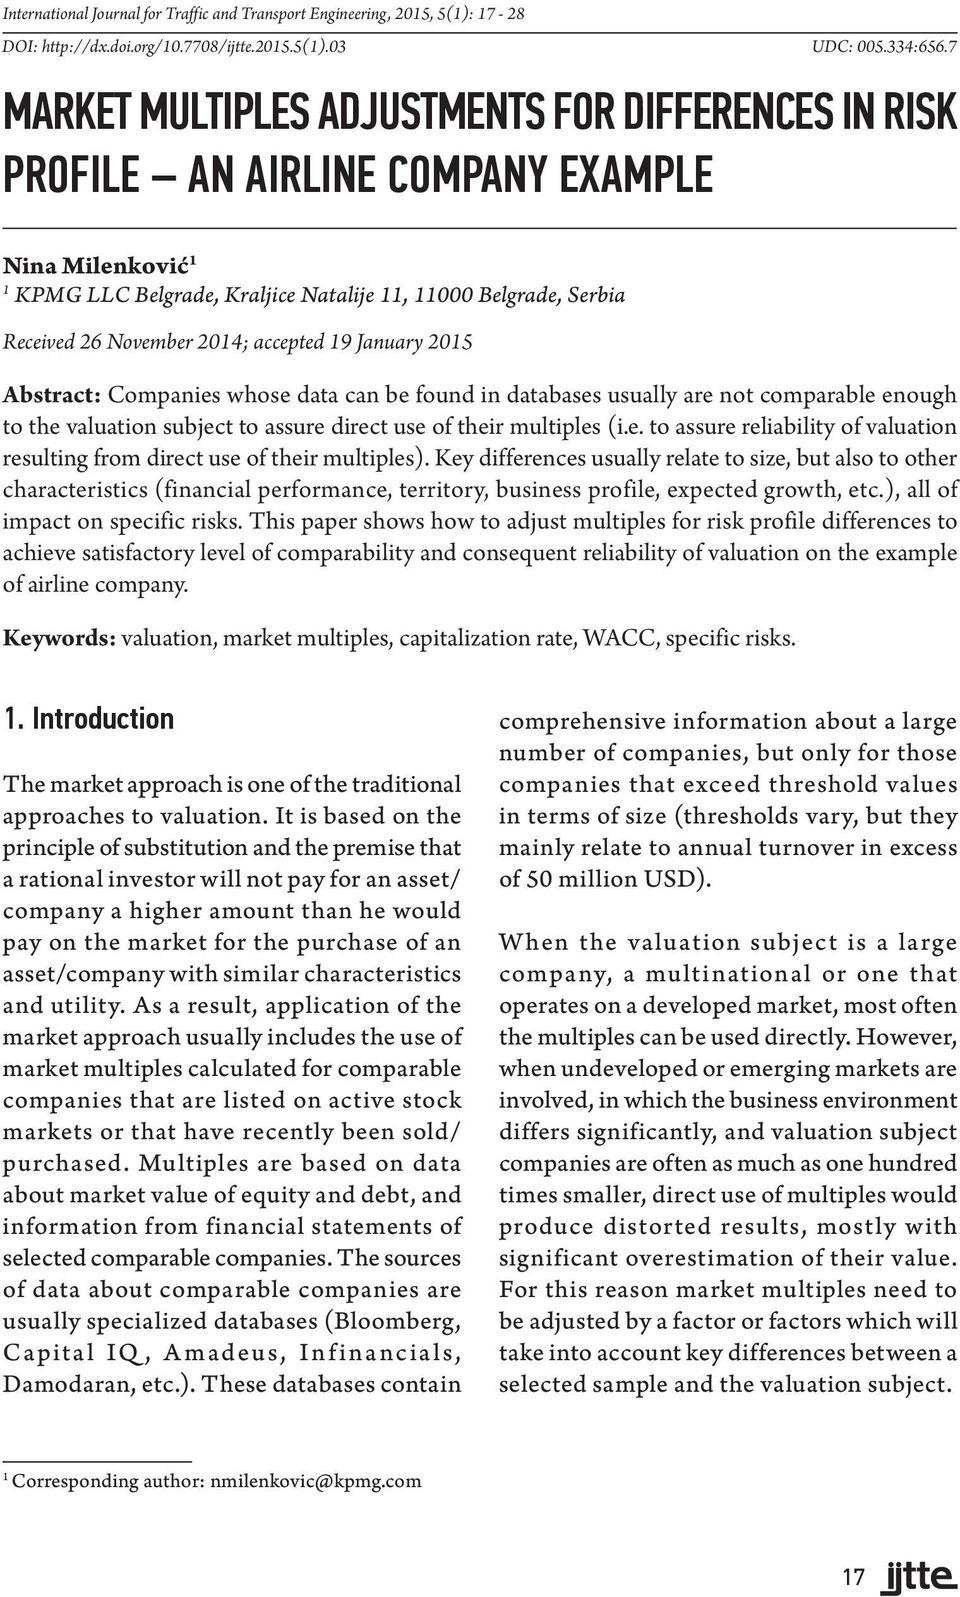 MARKET MULTIPLES ADJUSTMENTS FOR DIFFERENCES IN RISK PROFILE